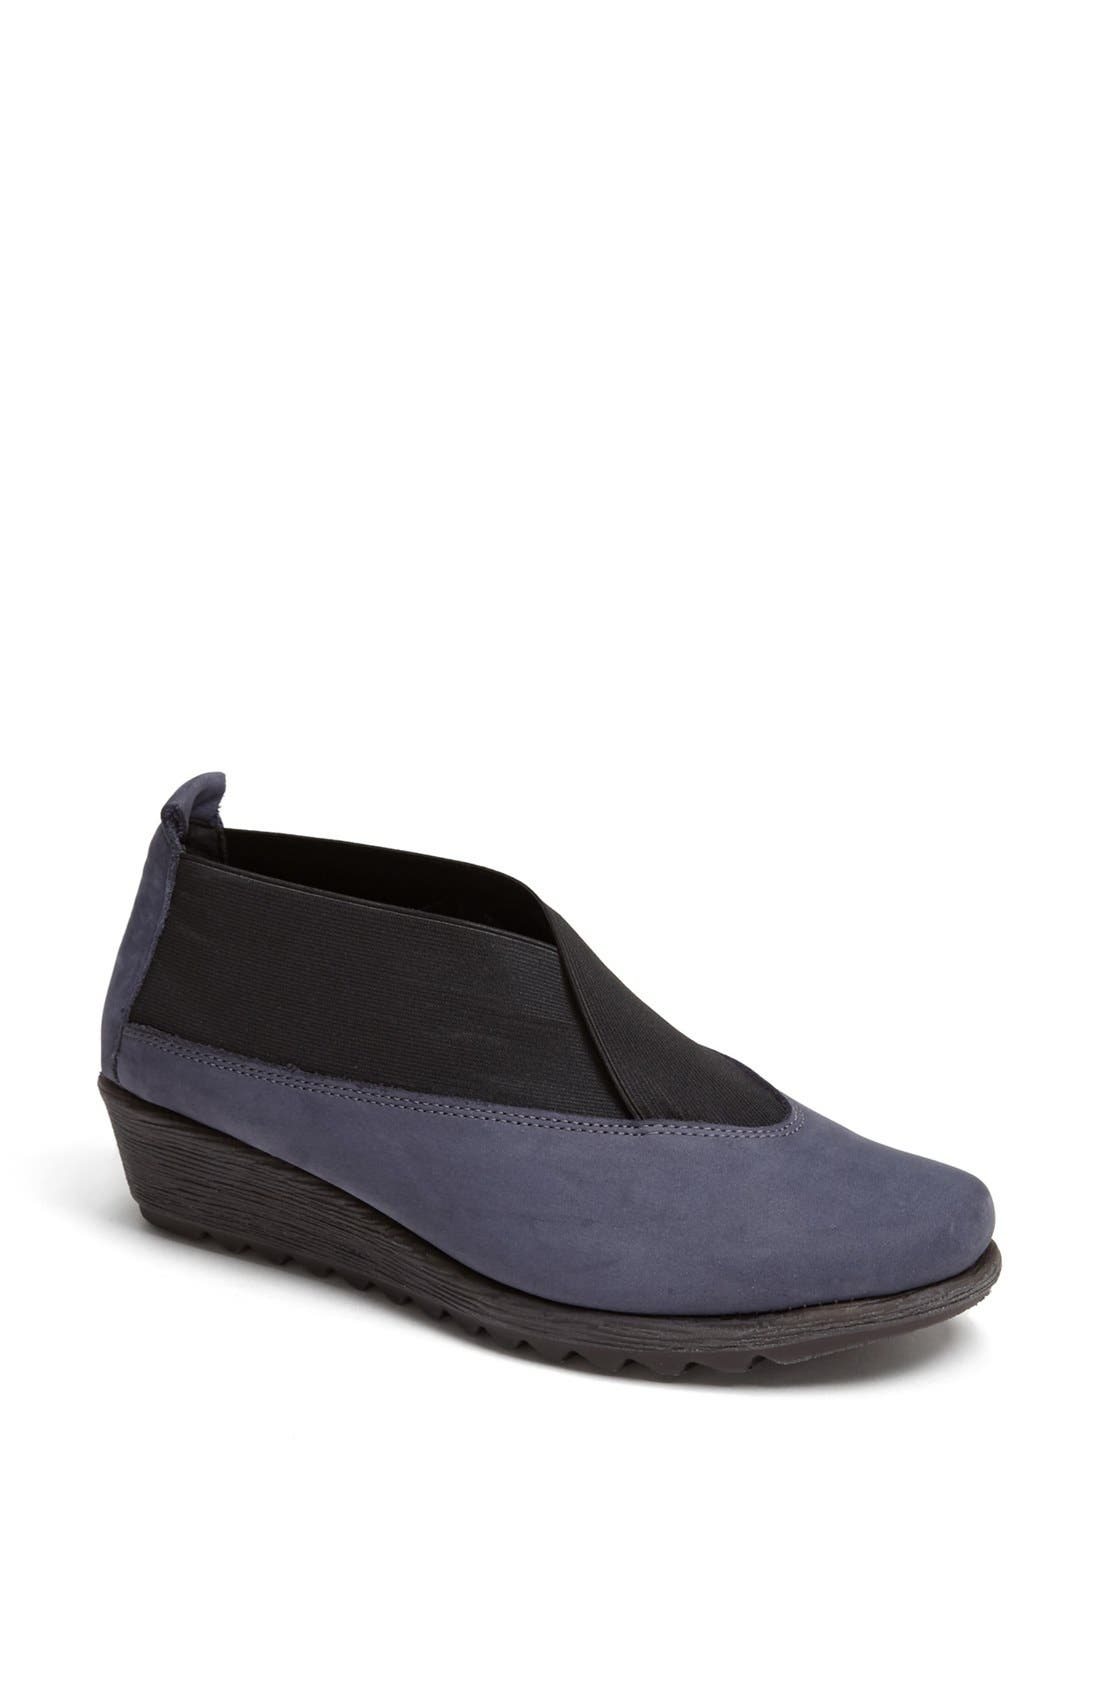 Main Image - The FLEXX 'Stretch Run' Slip-On